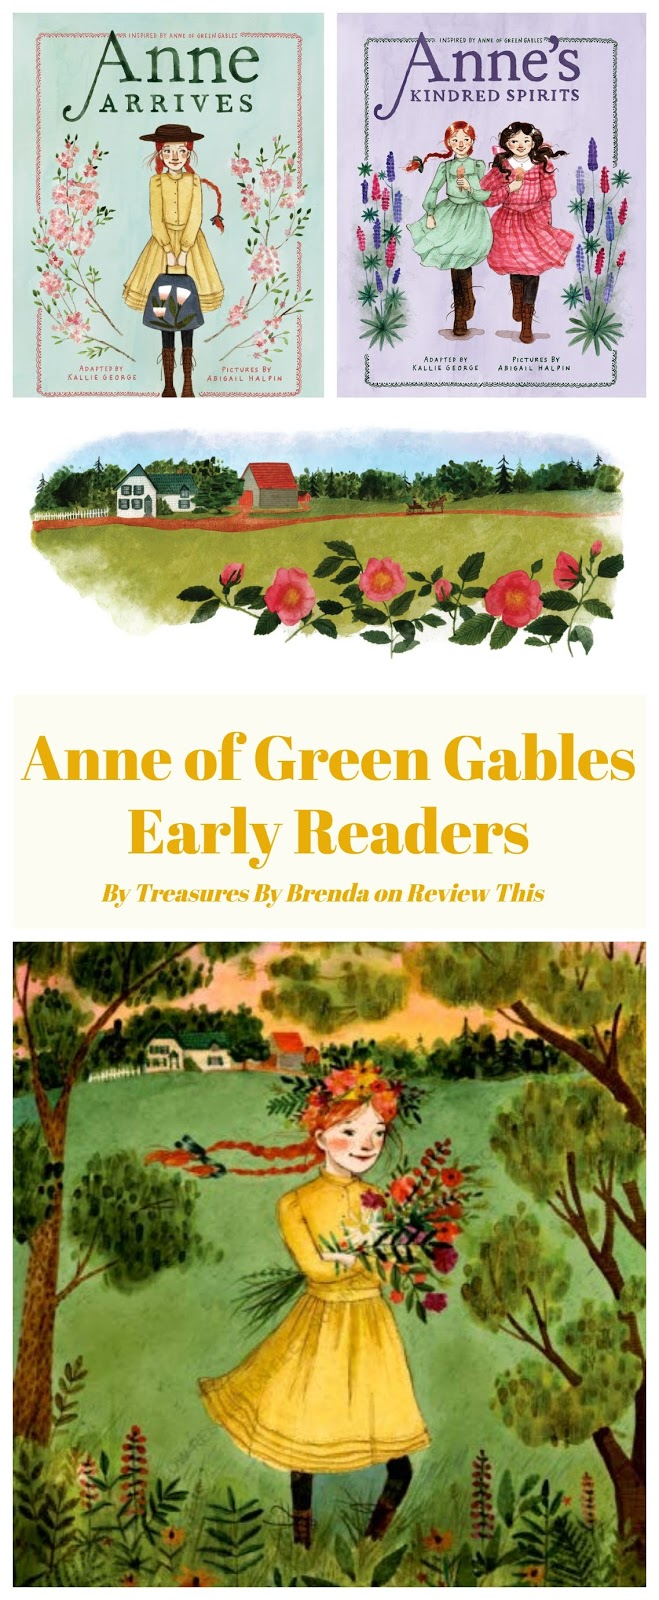 Anne of Green Gables Early Reader Books